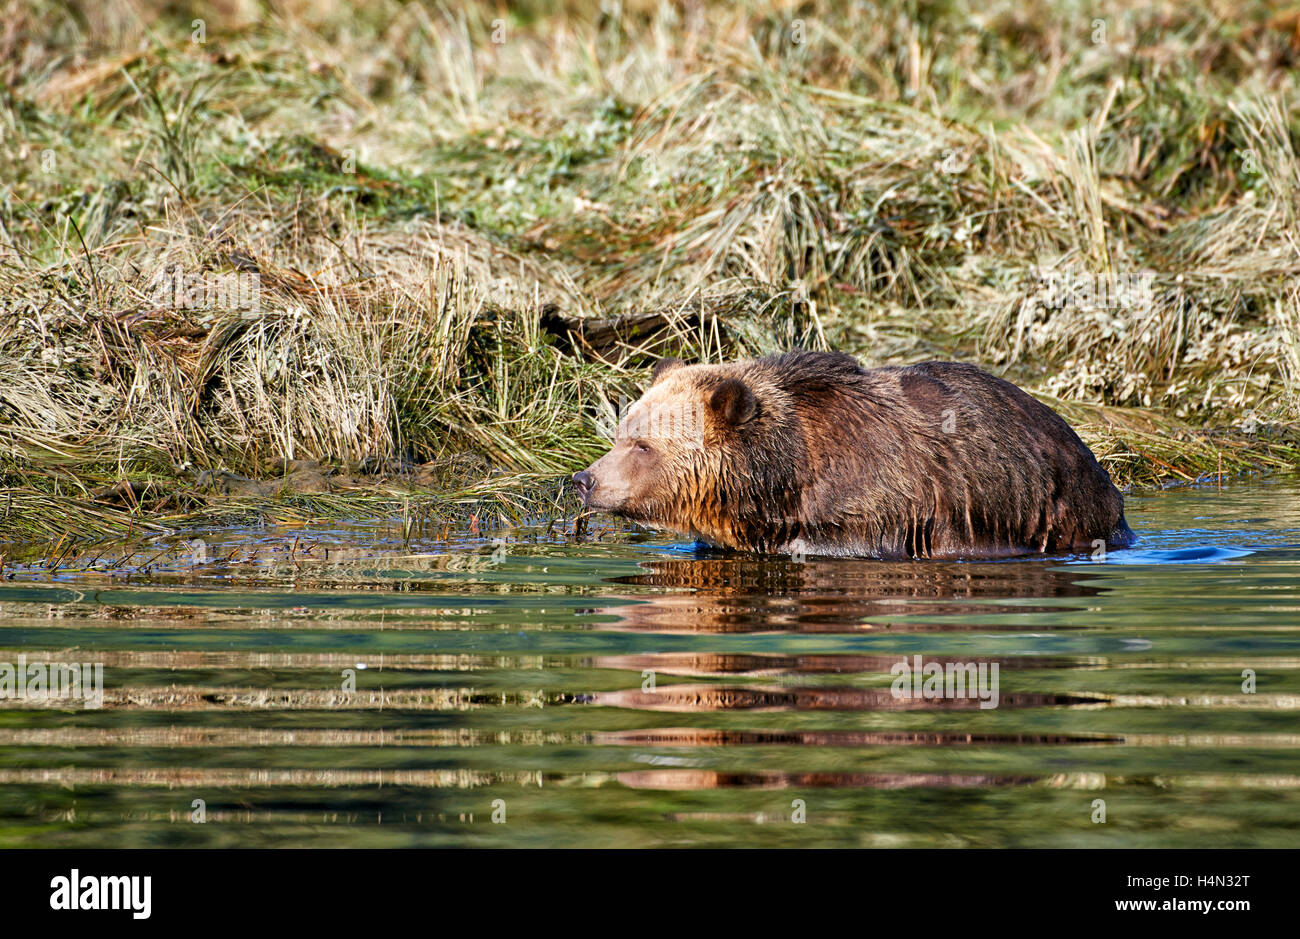 Grizzly bear hunting salmon, Ursus arctos horribilis, Great Bear Rainforest, Knight Inlet, British Columbia, Canada - Stock Image